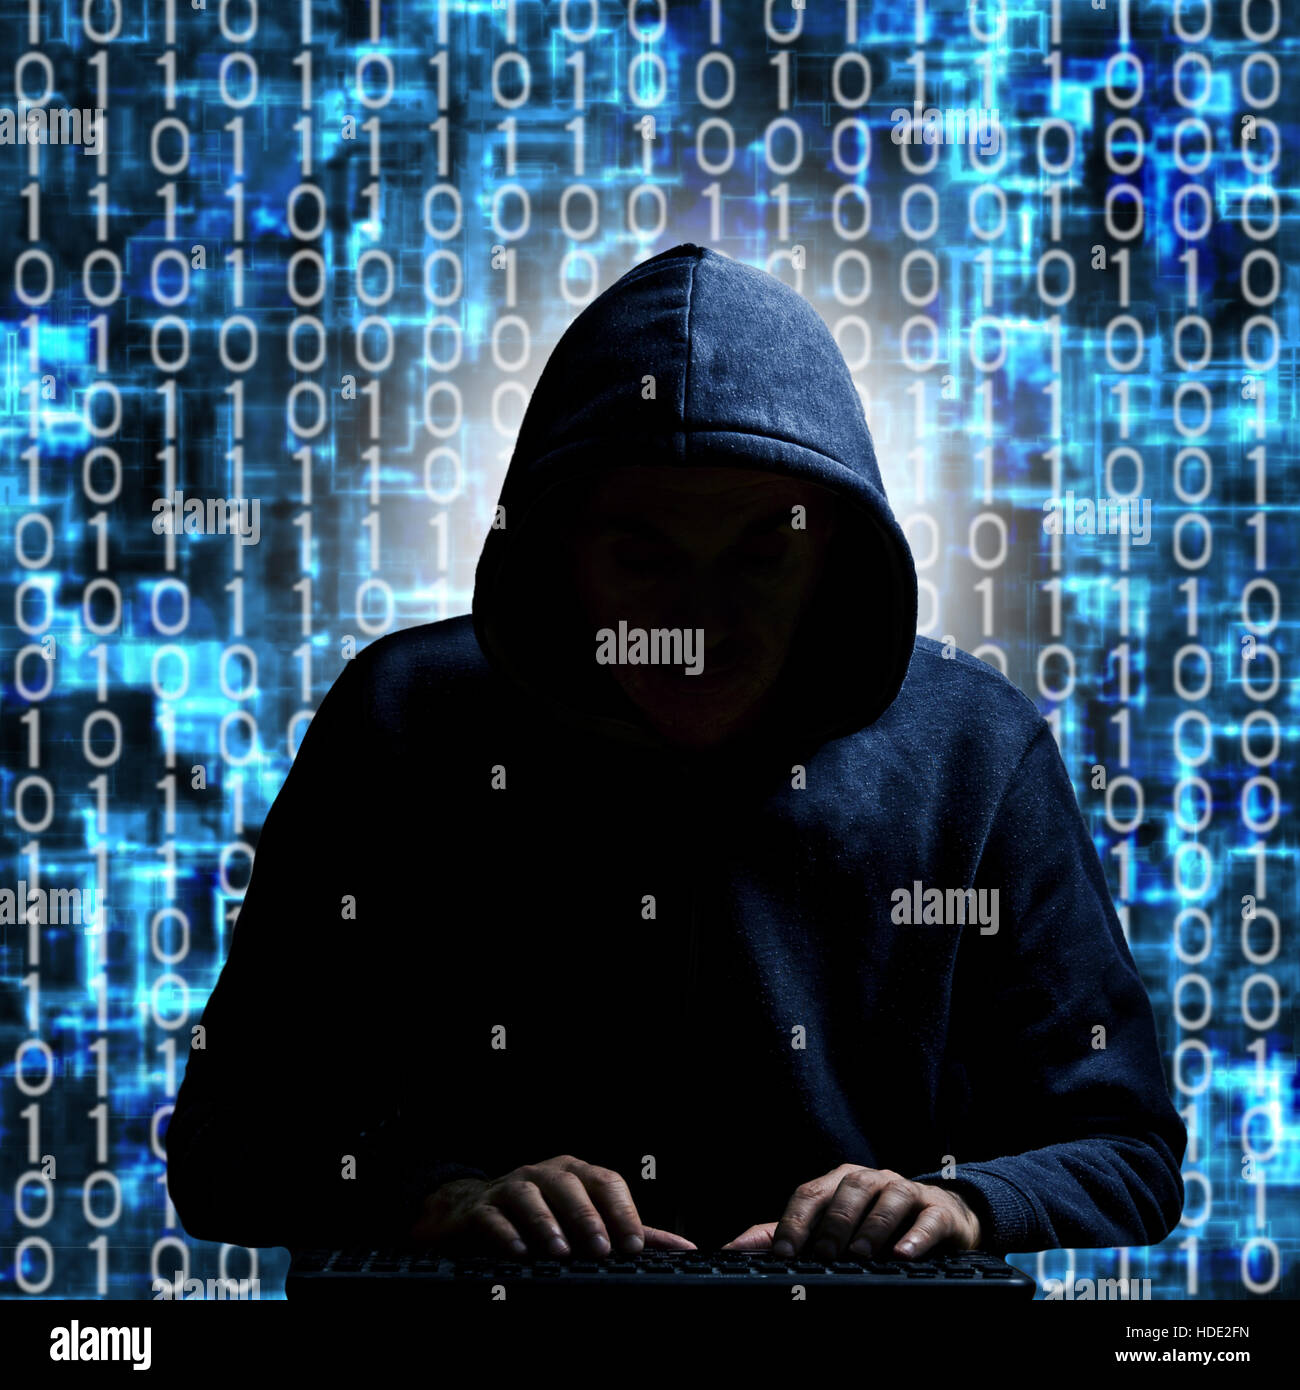 Anonymous Mask Wallpaper 3d Anonymous Hacker In Hood Typing On A Keyboard With Binary